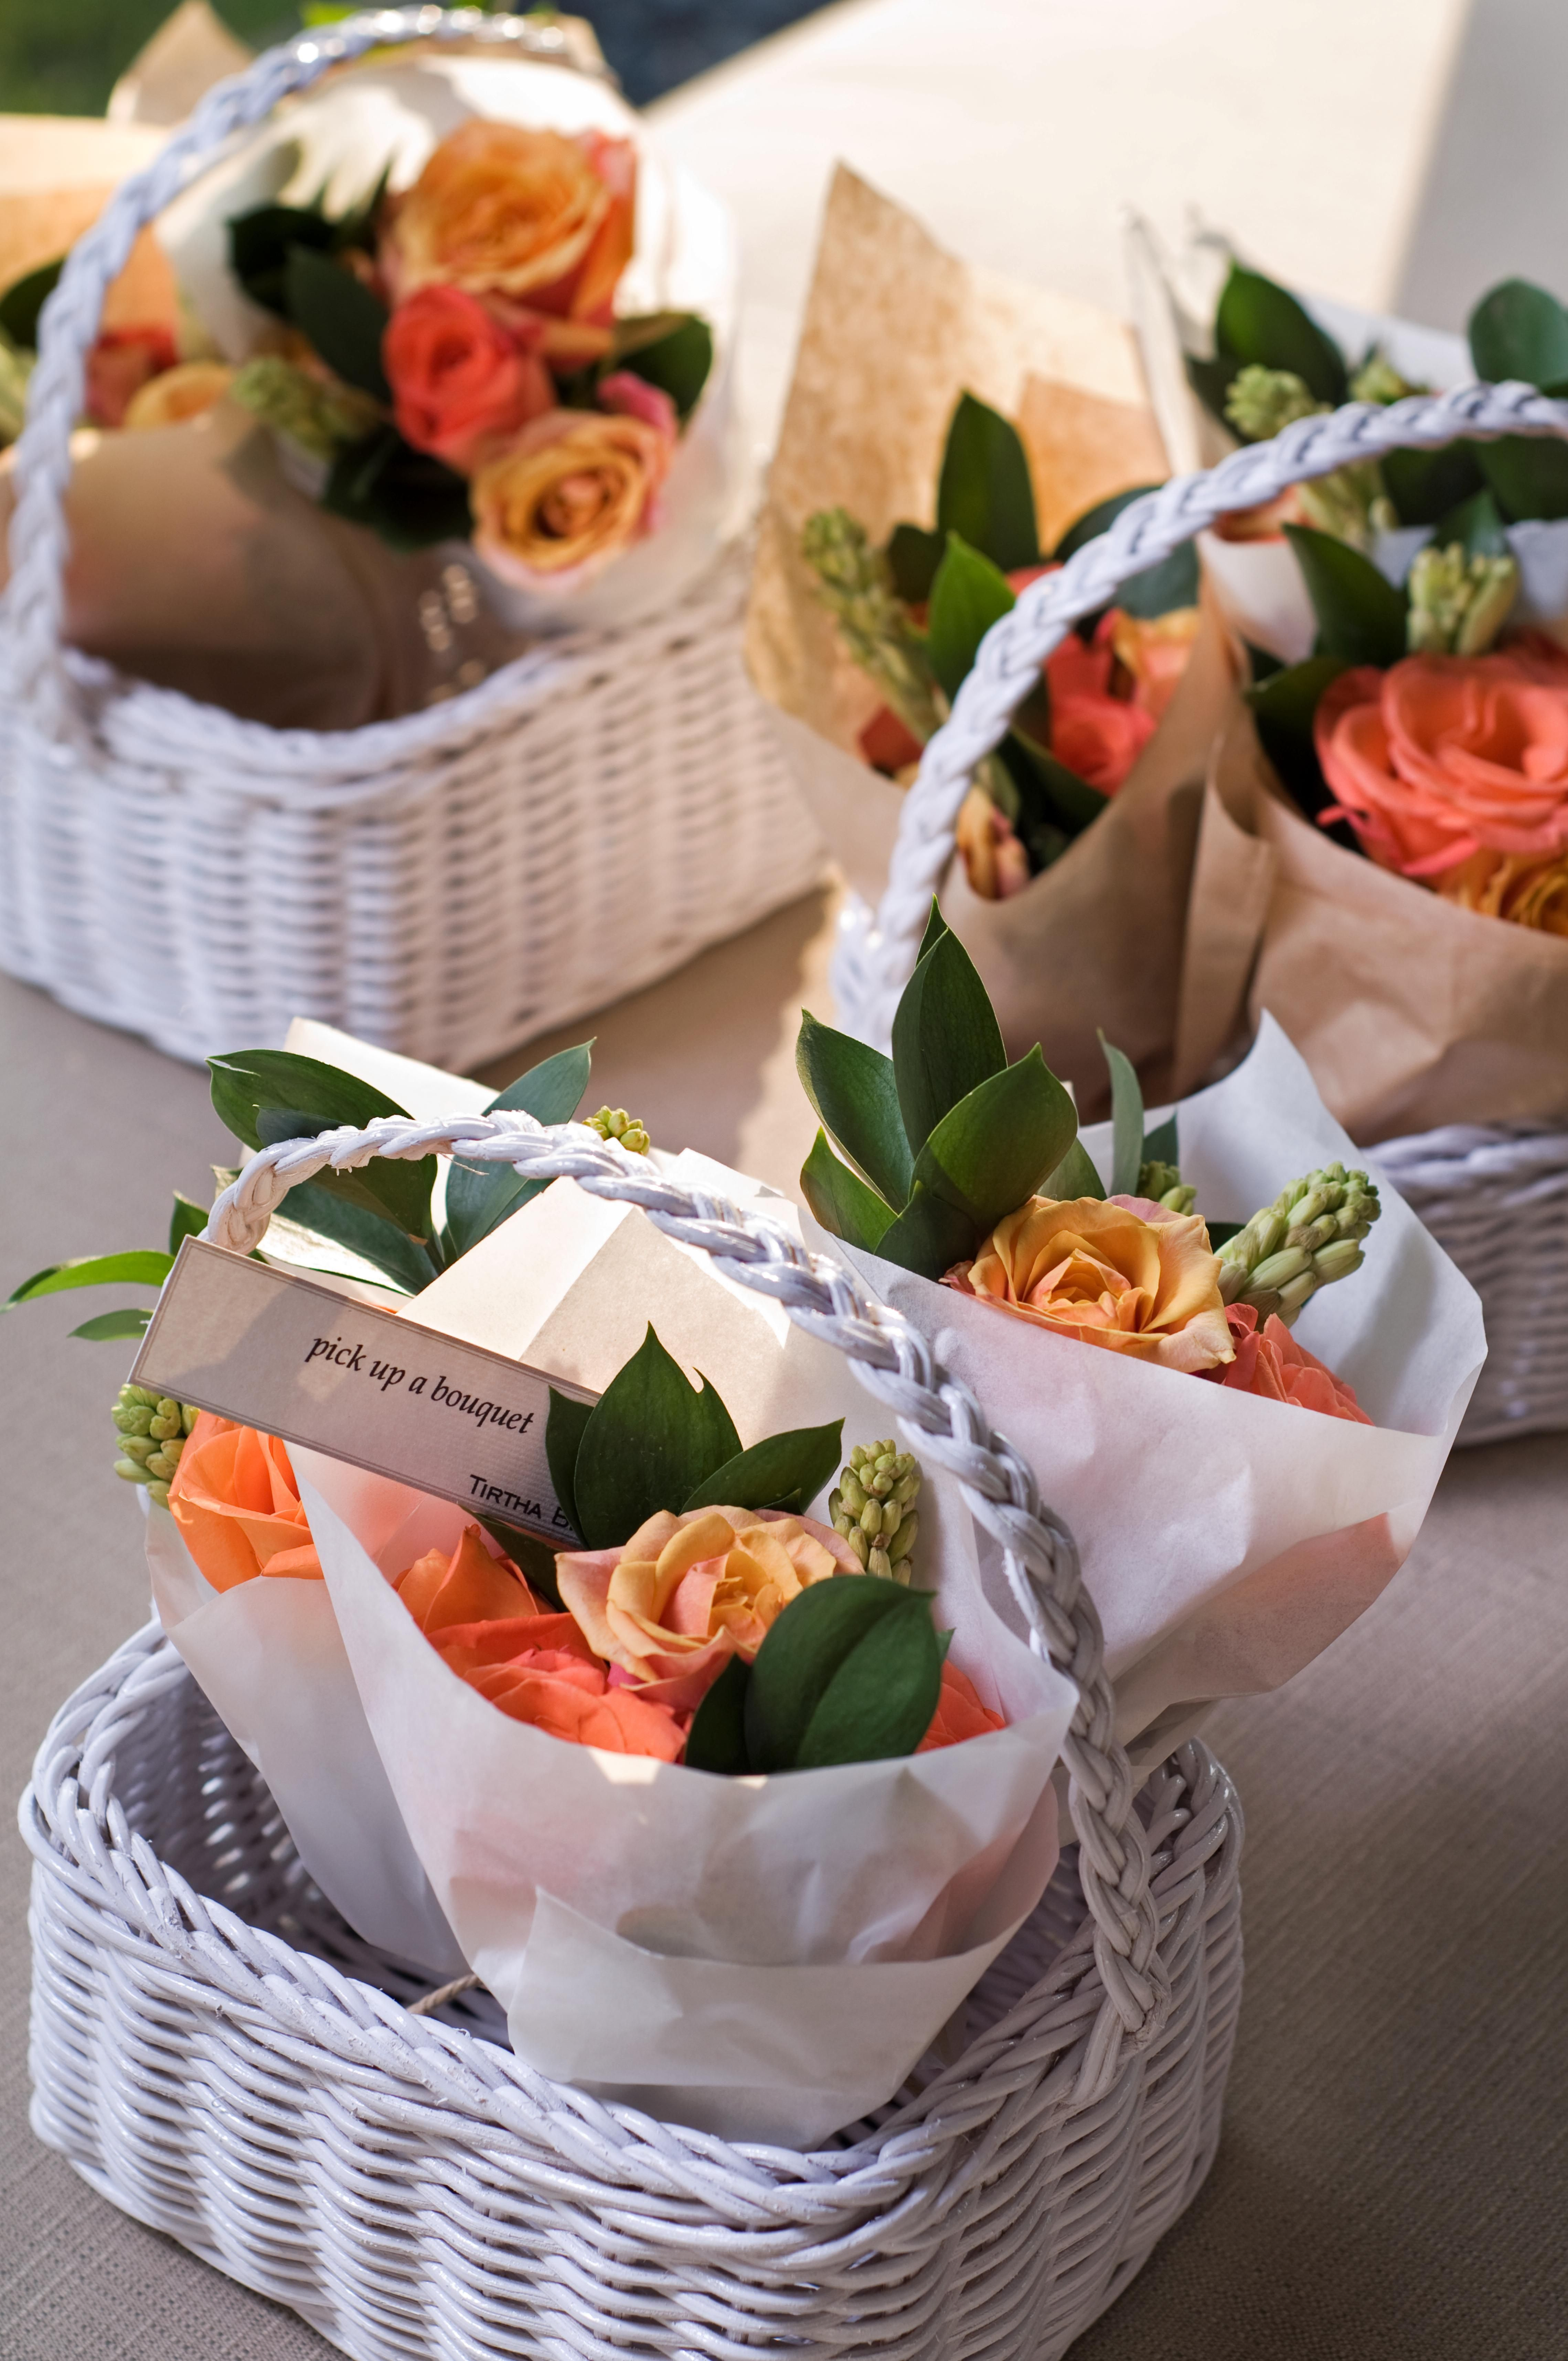 Show your love to your guests with these little bouquets, packed in tiny baskets. #wedding #tirthabridal #tirtha #bridal #bali #favors #basket #bouquet #flower